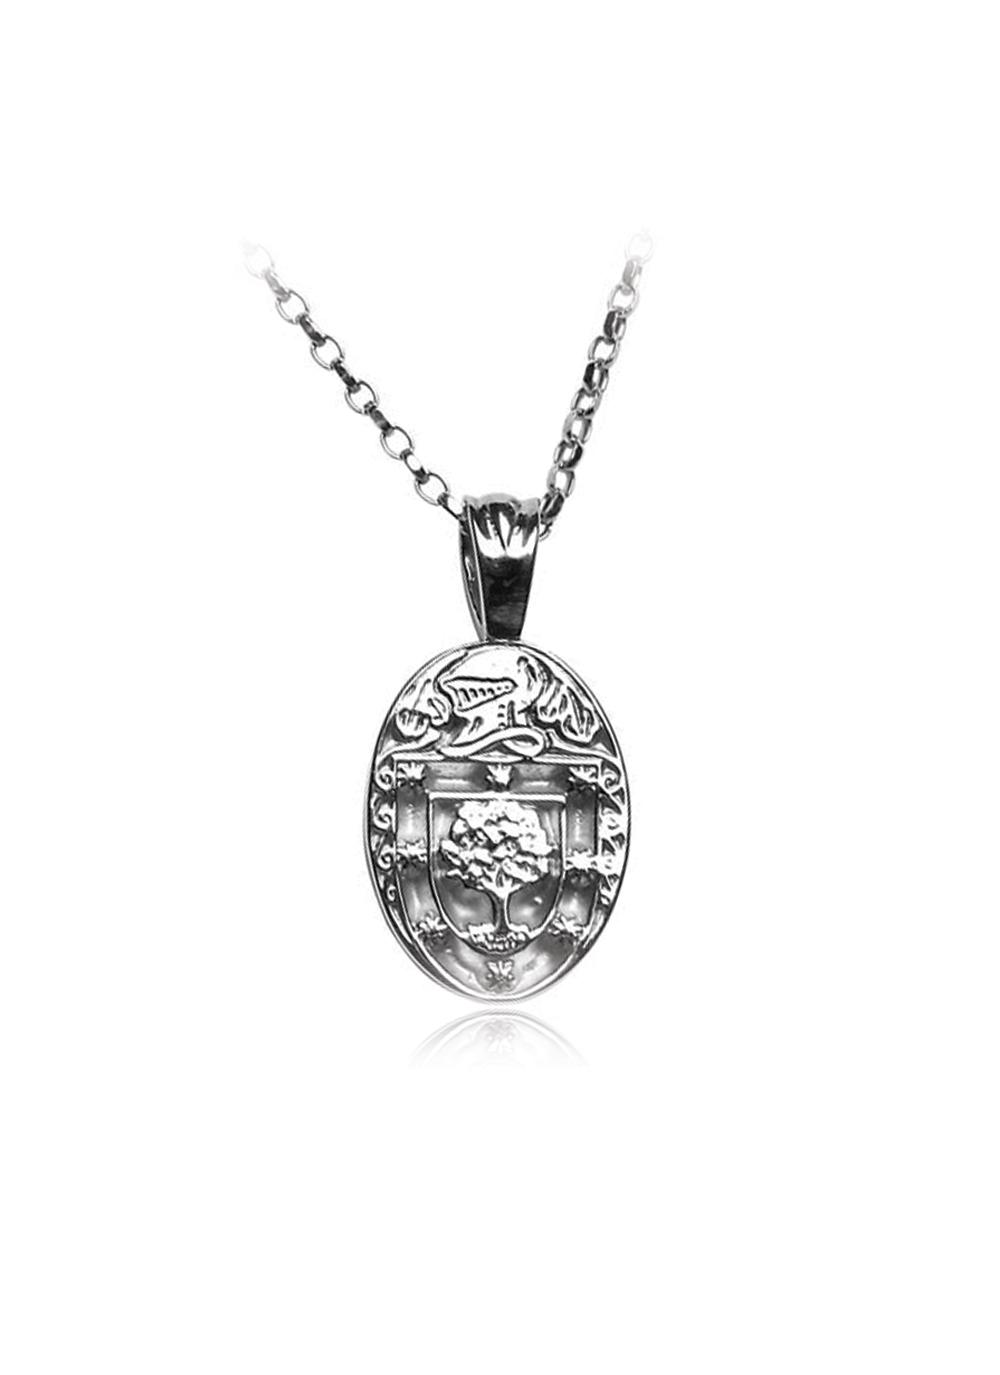 Personalized Oval Coat Of Arms Family Pendant Blarney